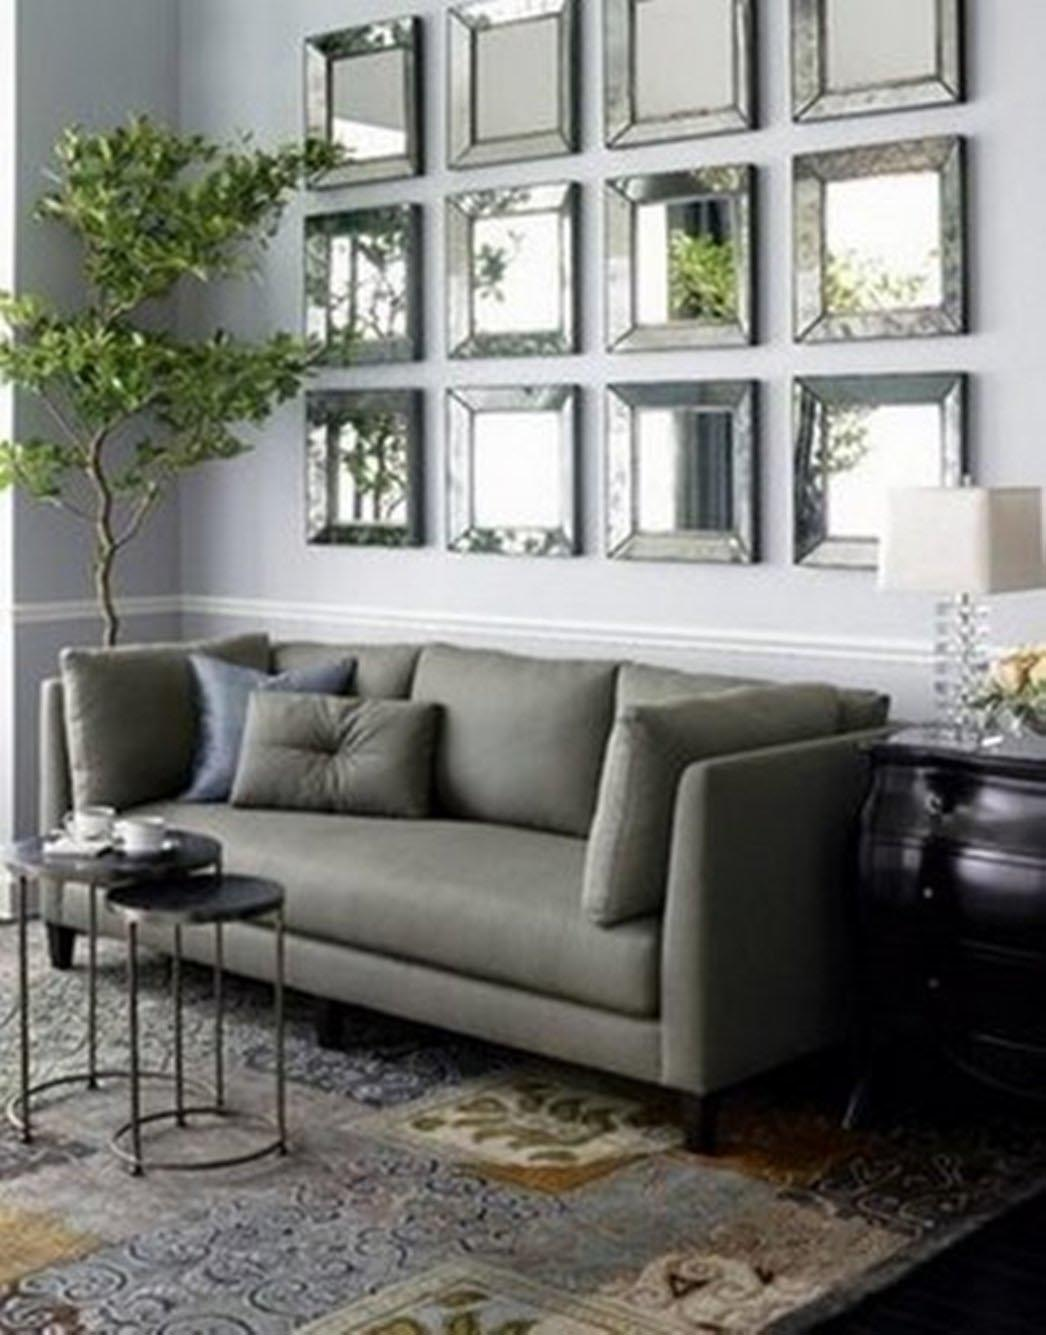 Charmant Modern Wall Mirrors For Living Room